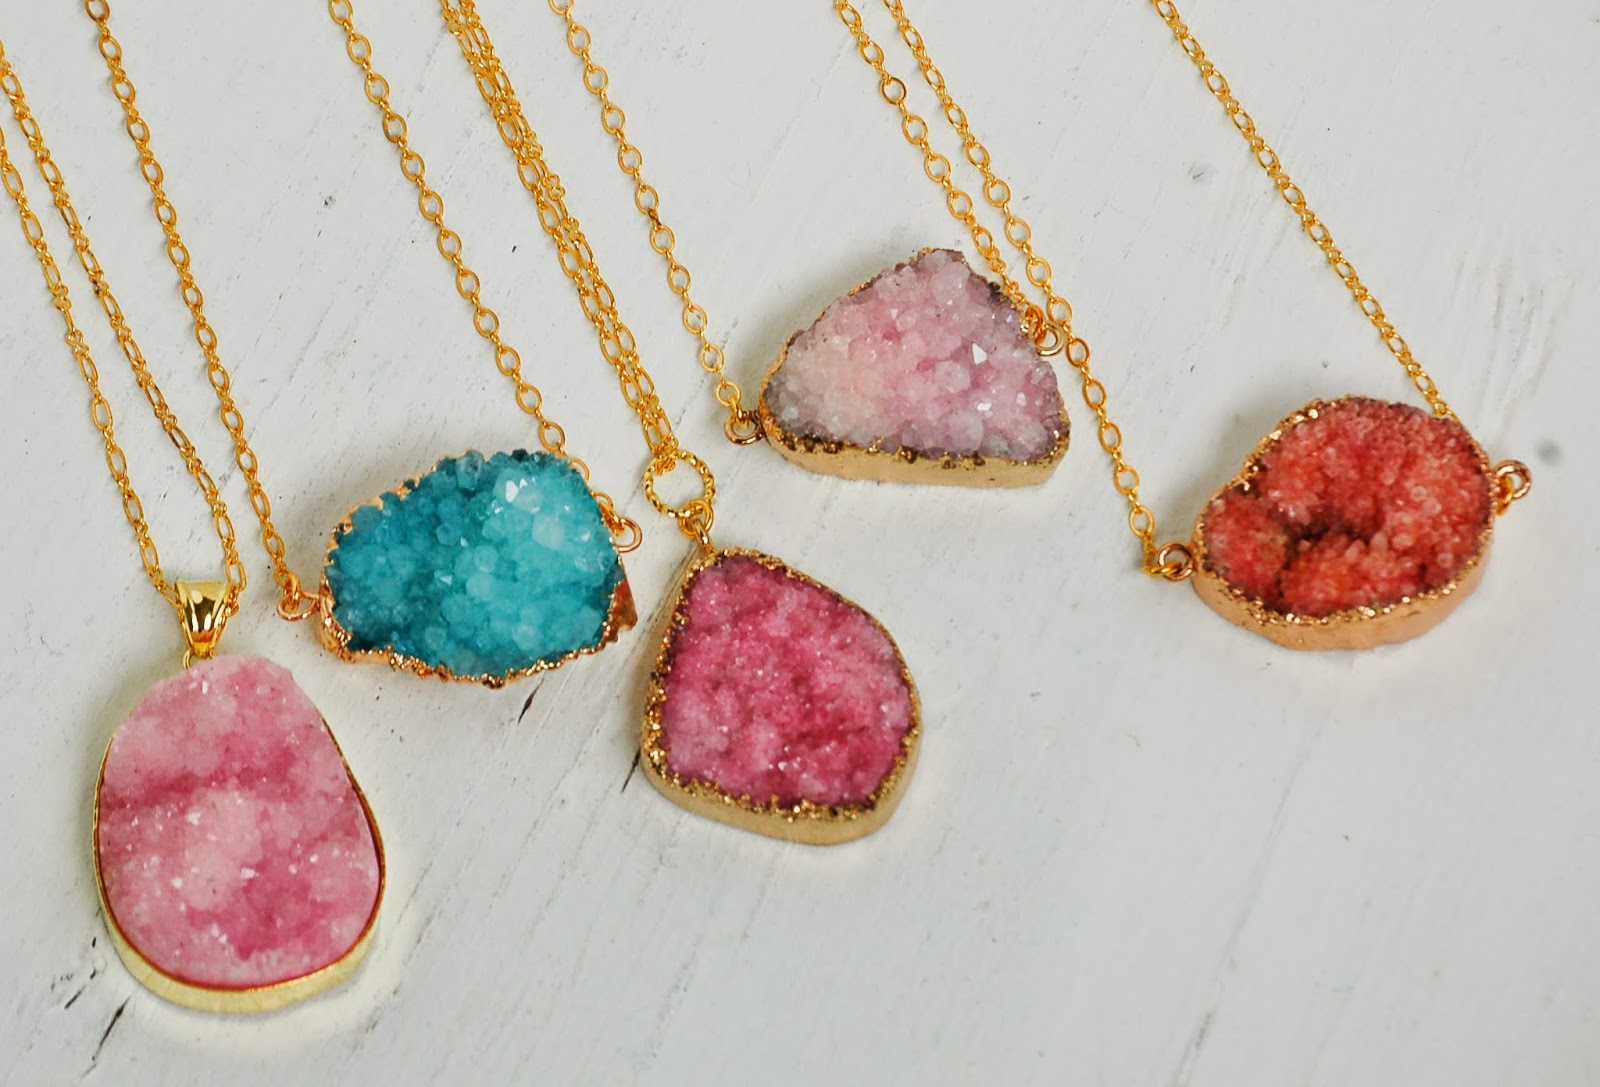 AGATE Druzy NECKLACE Beautiful Stone Quartz